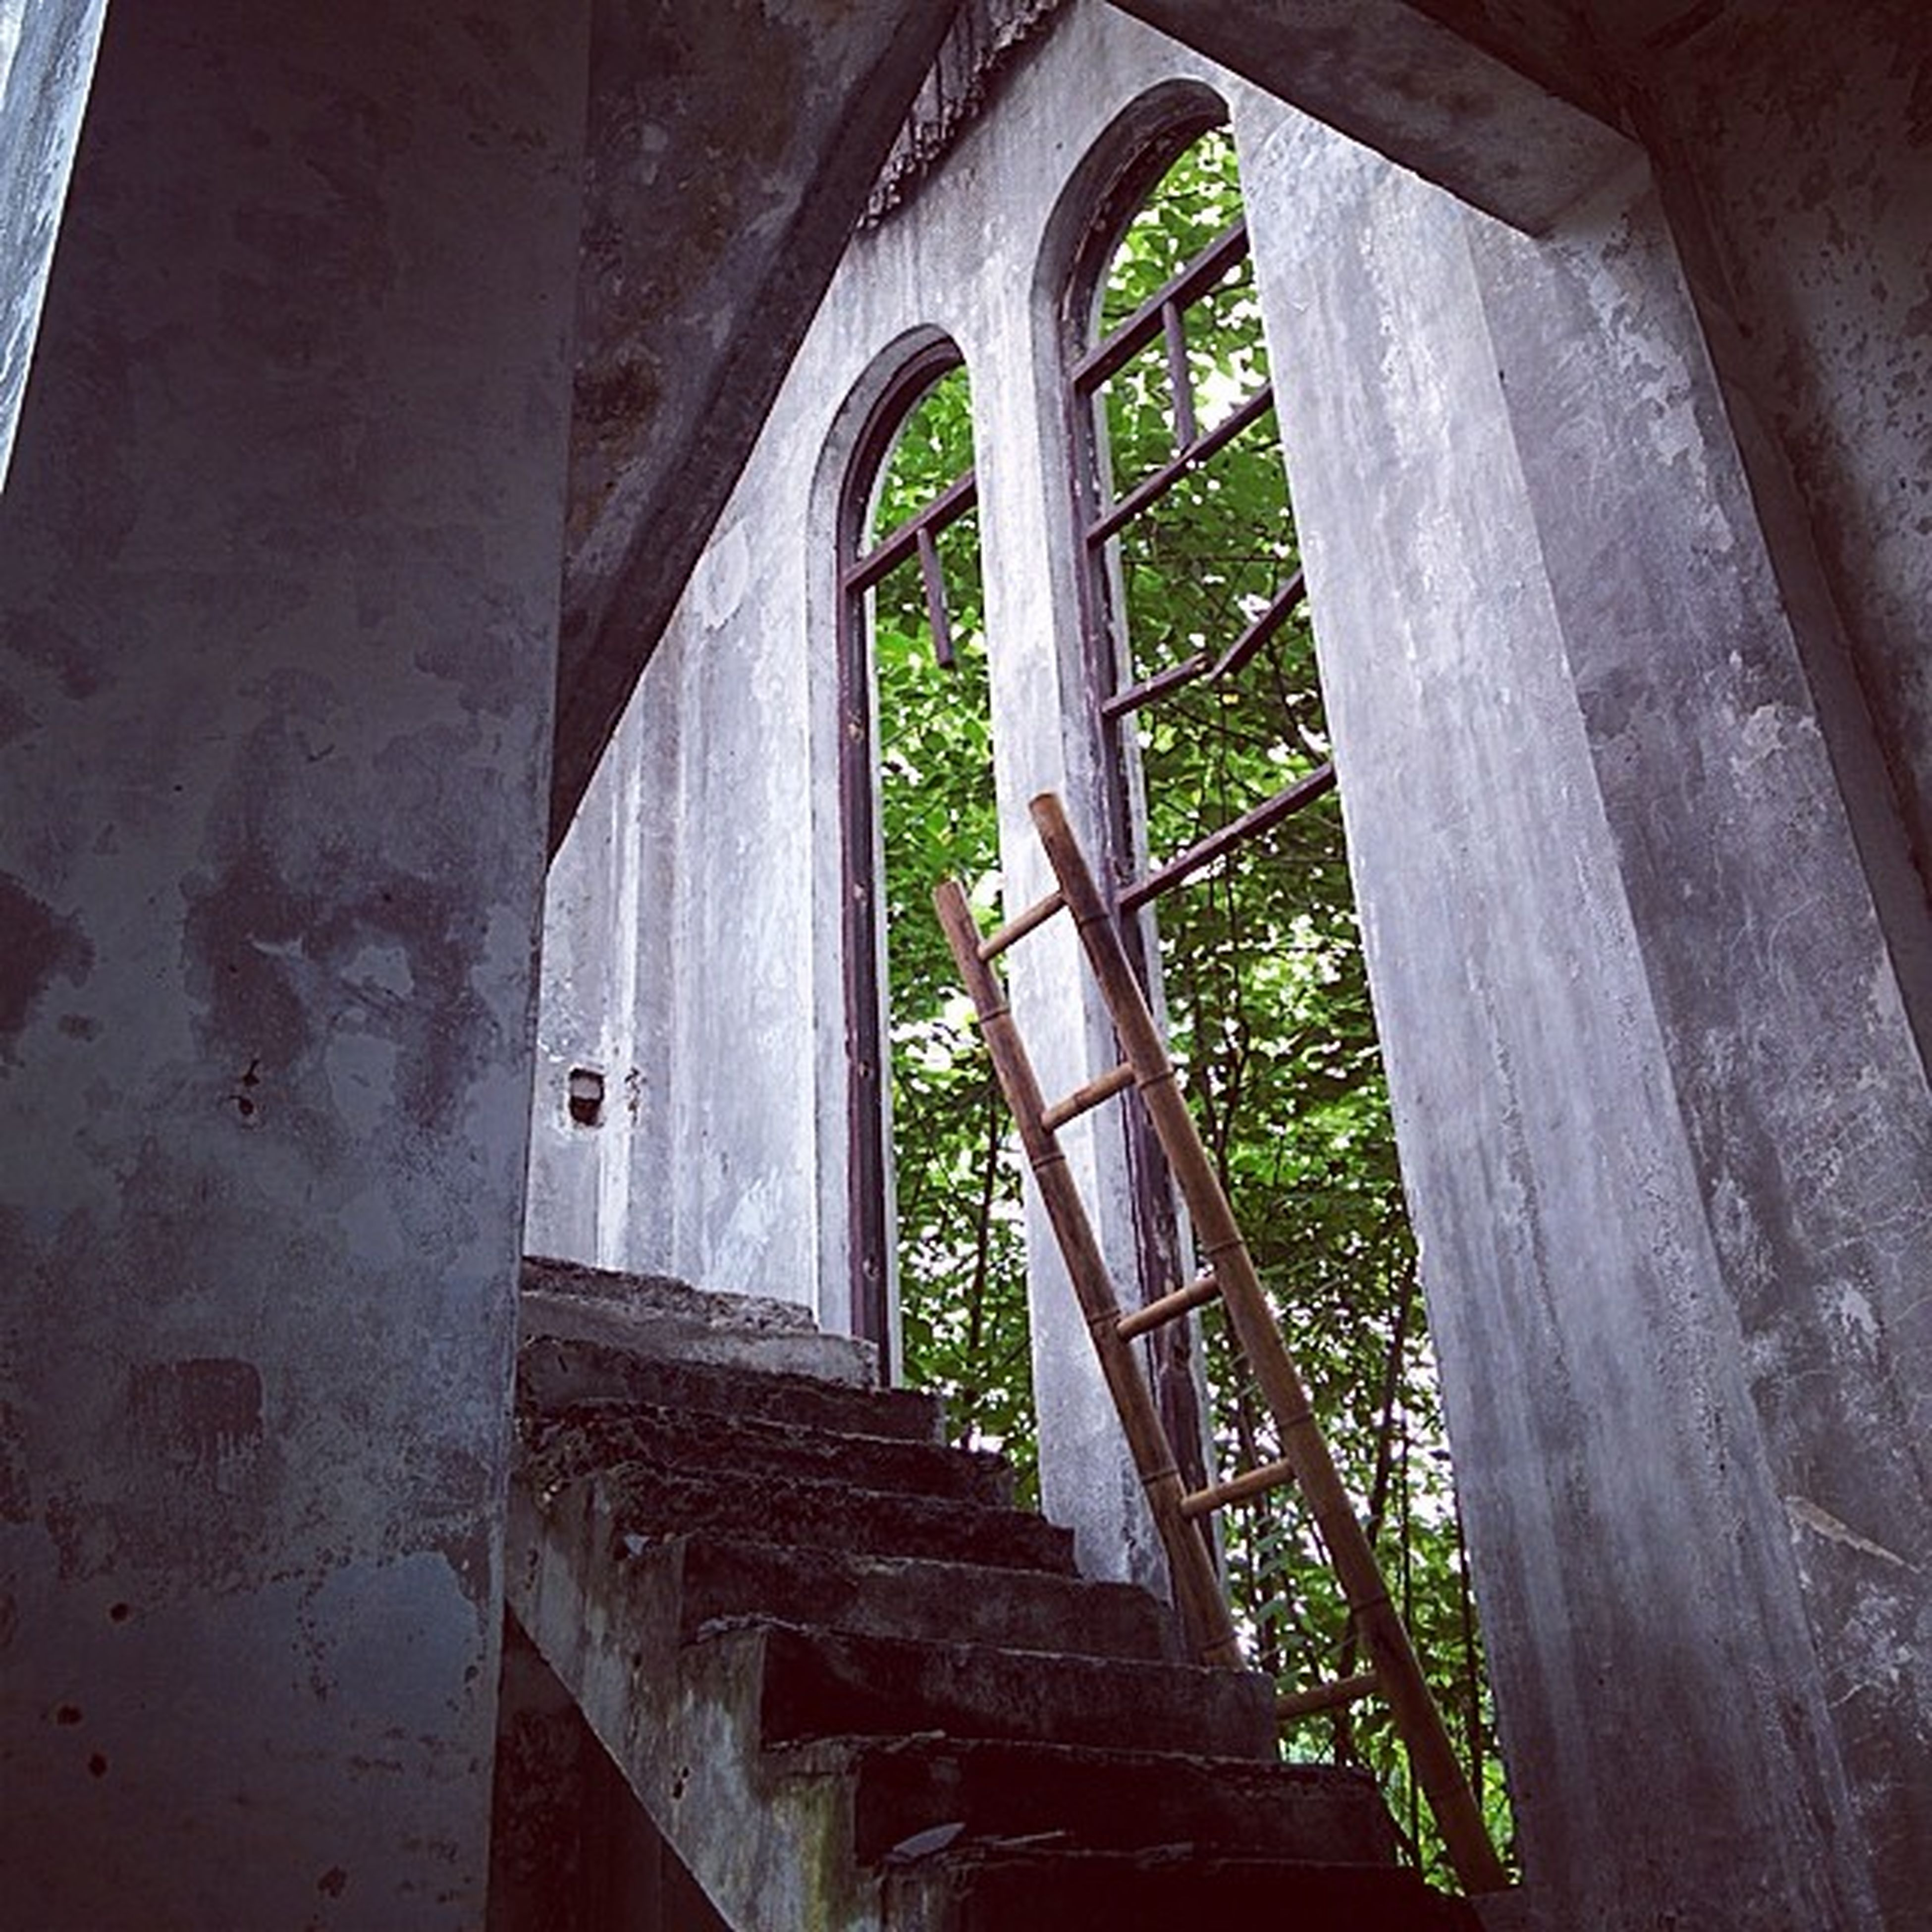 architecture, built structure, indoors, arch, window, old, abandoned, railing, day, architectural column, no people, sunlight, steps, building, wall - building feature, low angle view, building exterior, staircase, damaged, tree